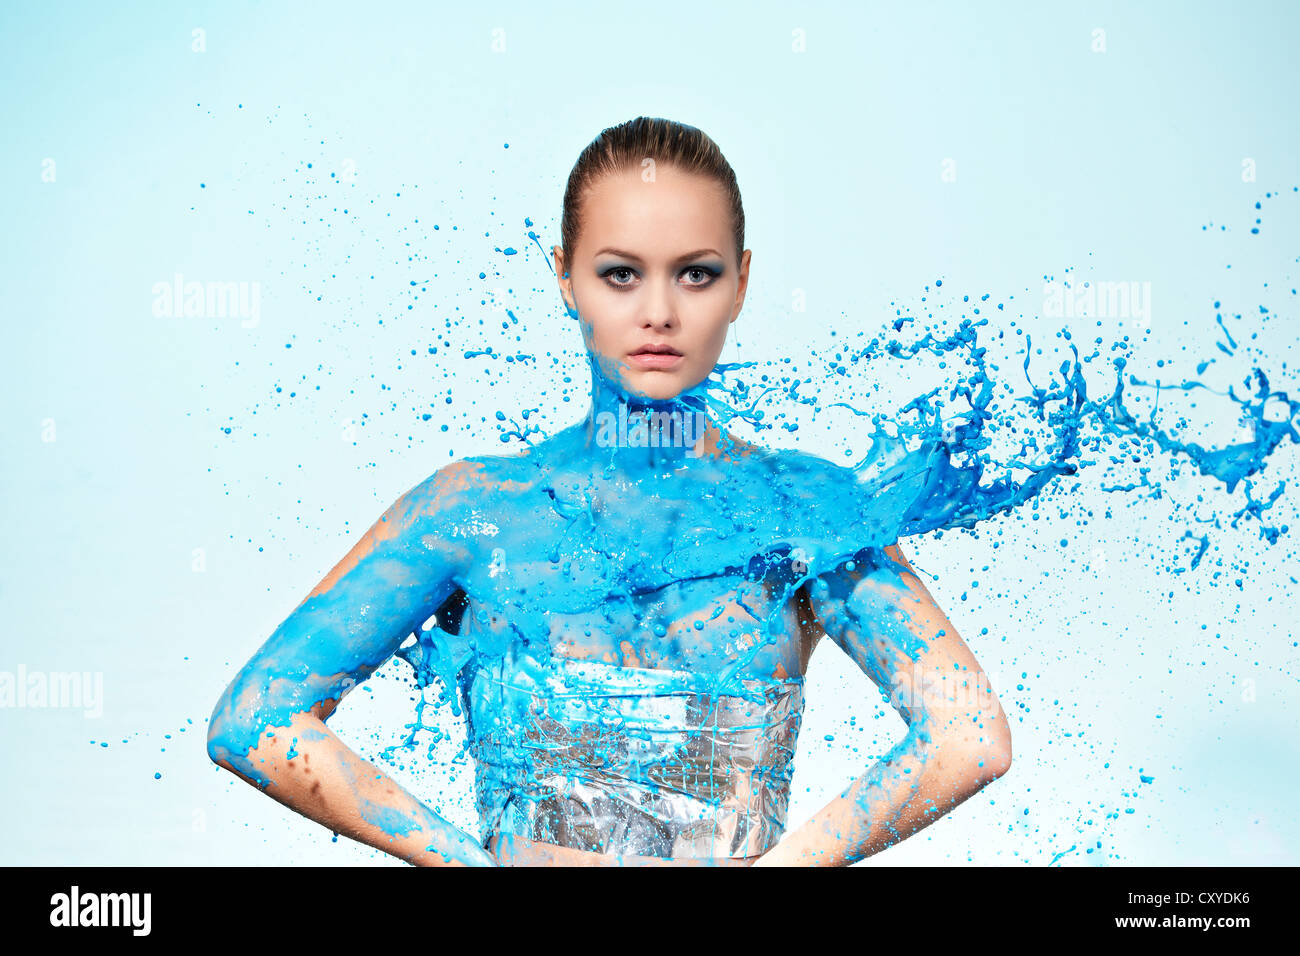 Blue paint being thrown at a young woman - Stock Image